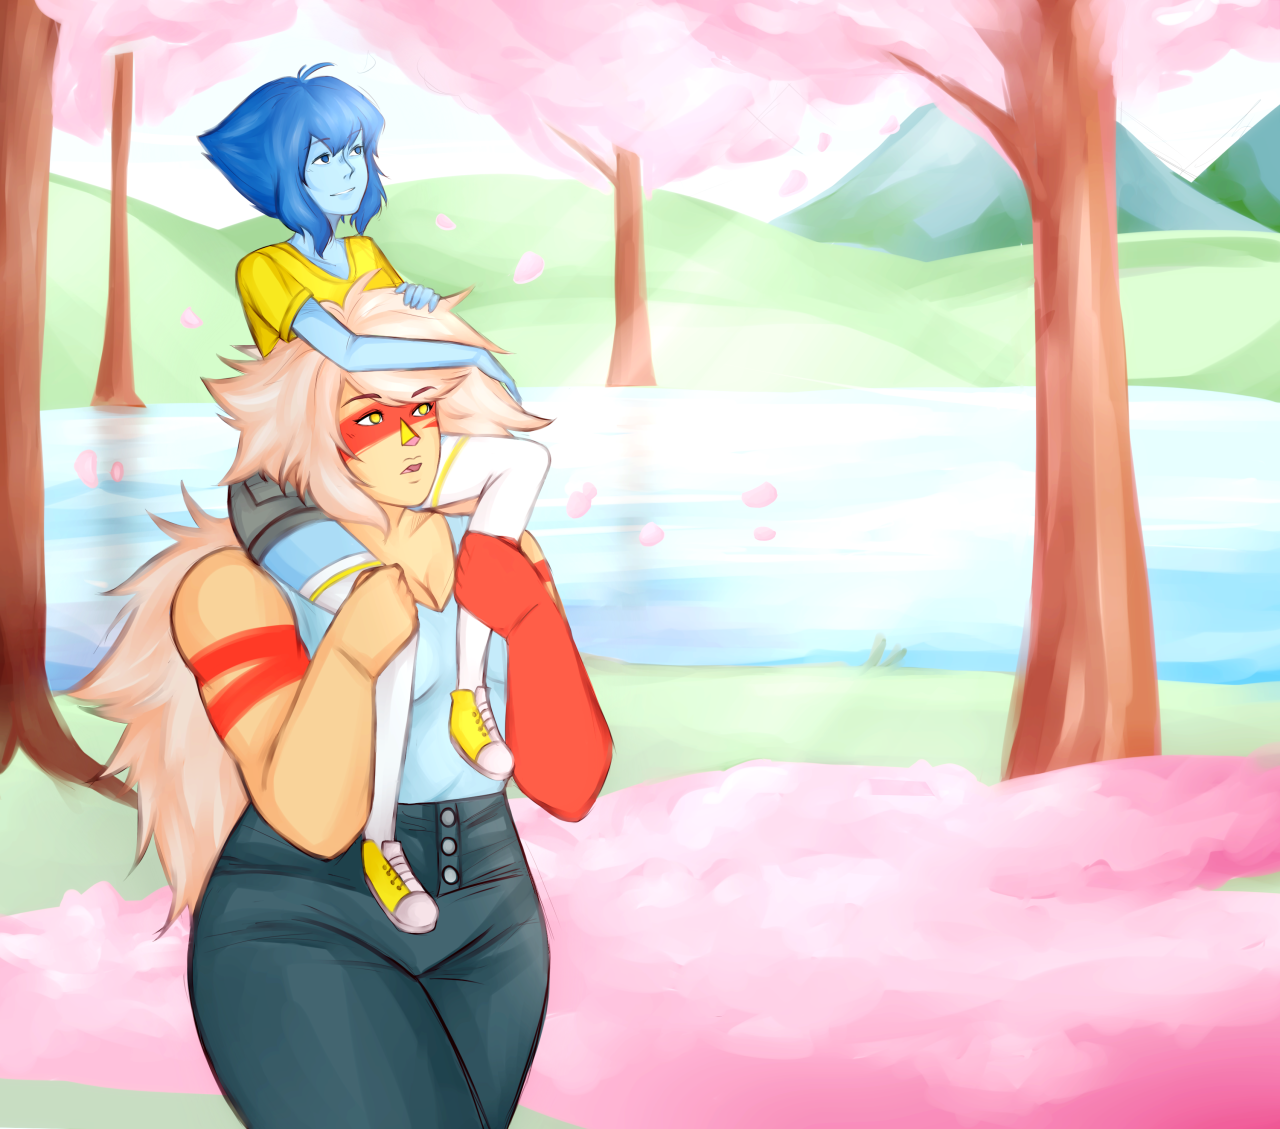 now arriving at Hanamura request 1 Jaspis: traveling the world! they went to Japan to see the cherry blossoms :')